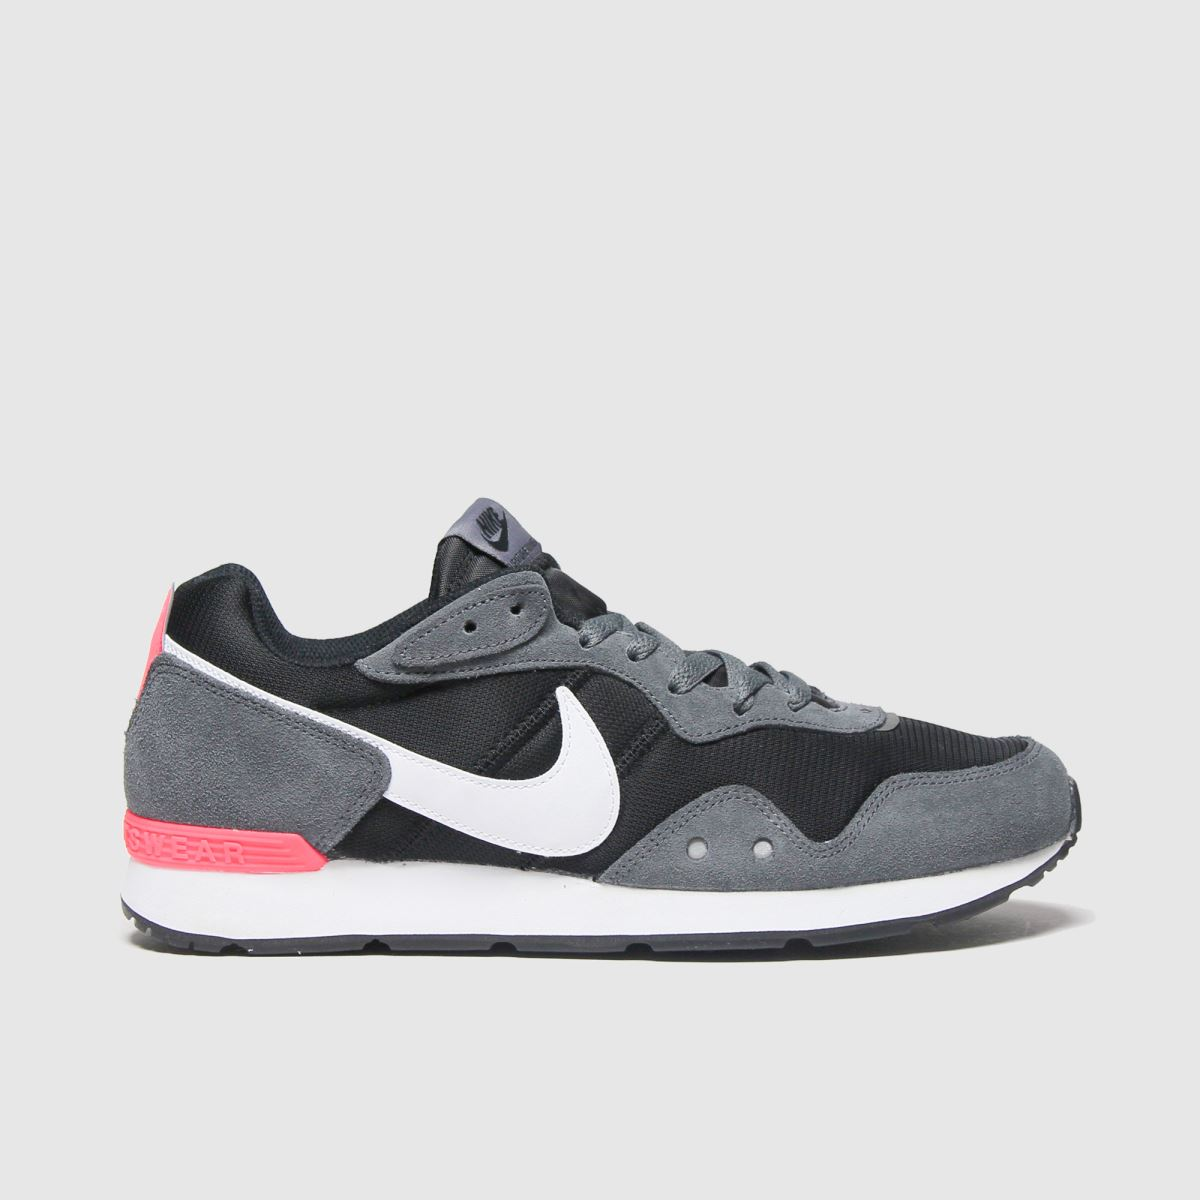 Nike Grey & Black Venture Runner Trainers